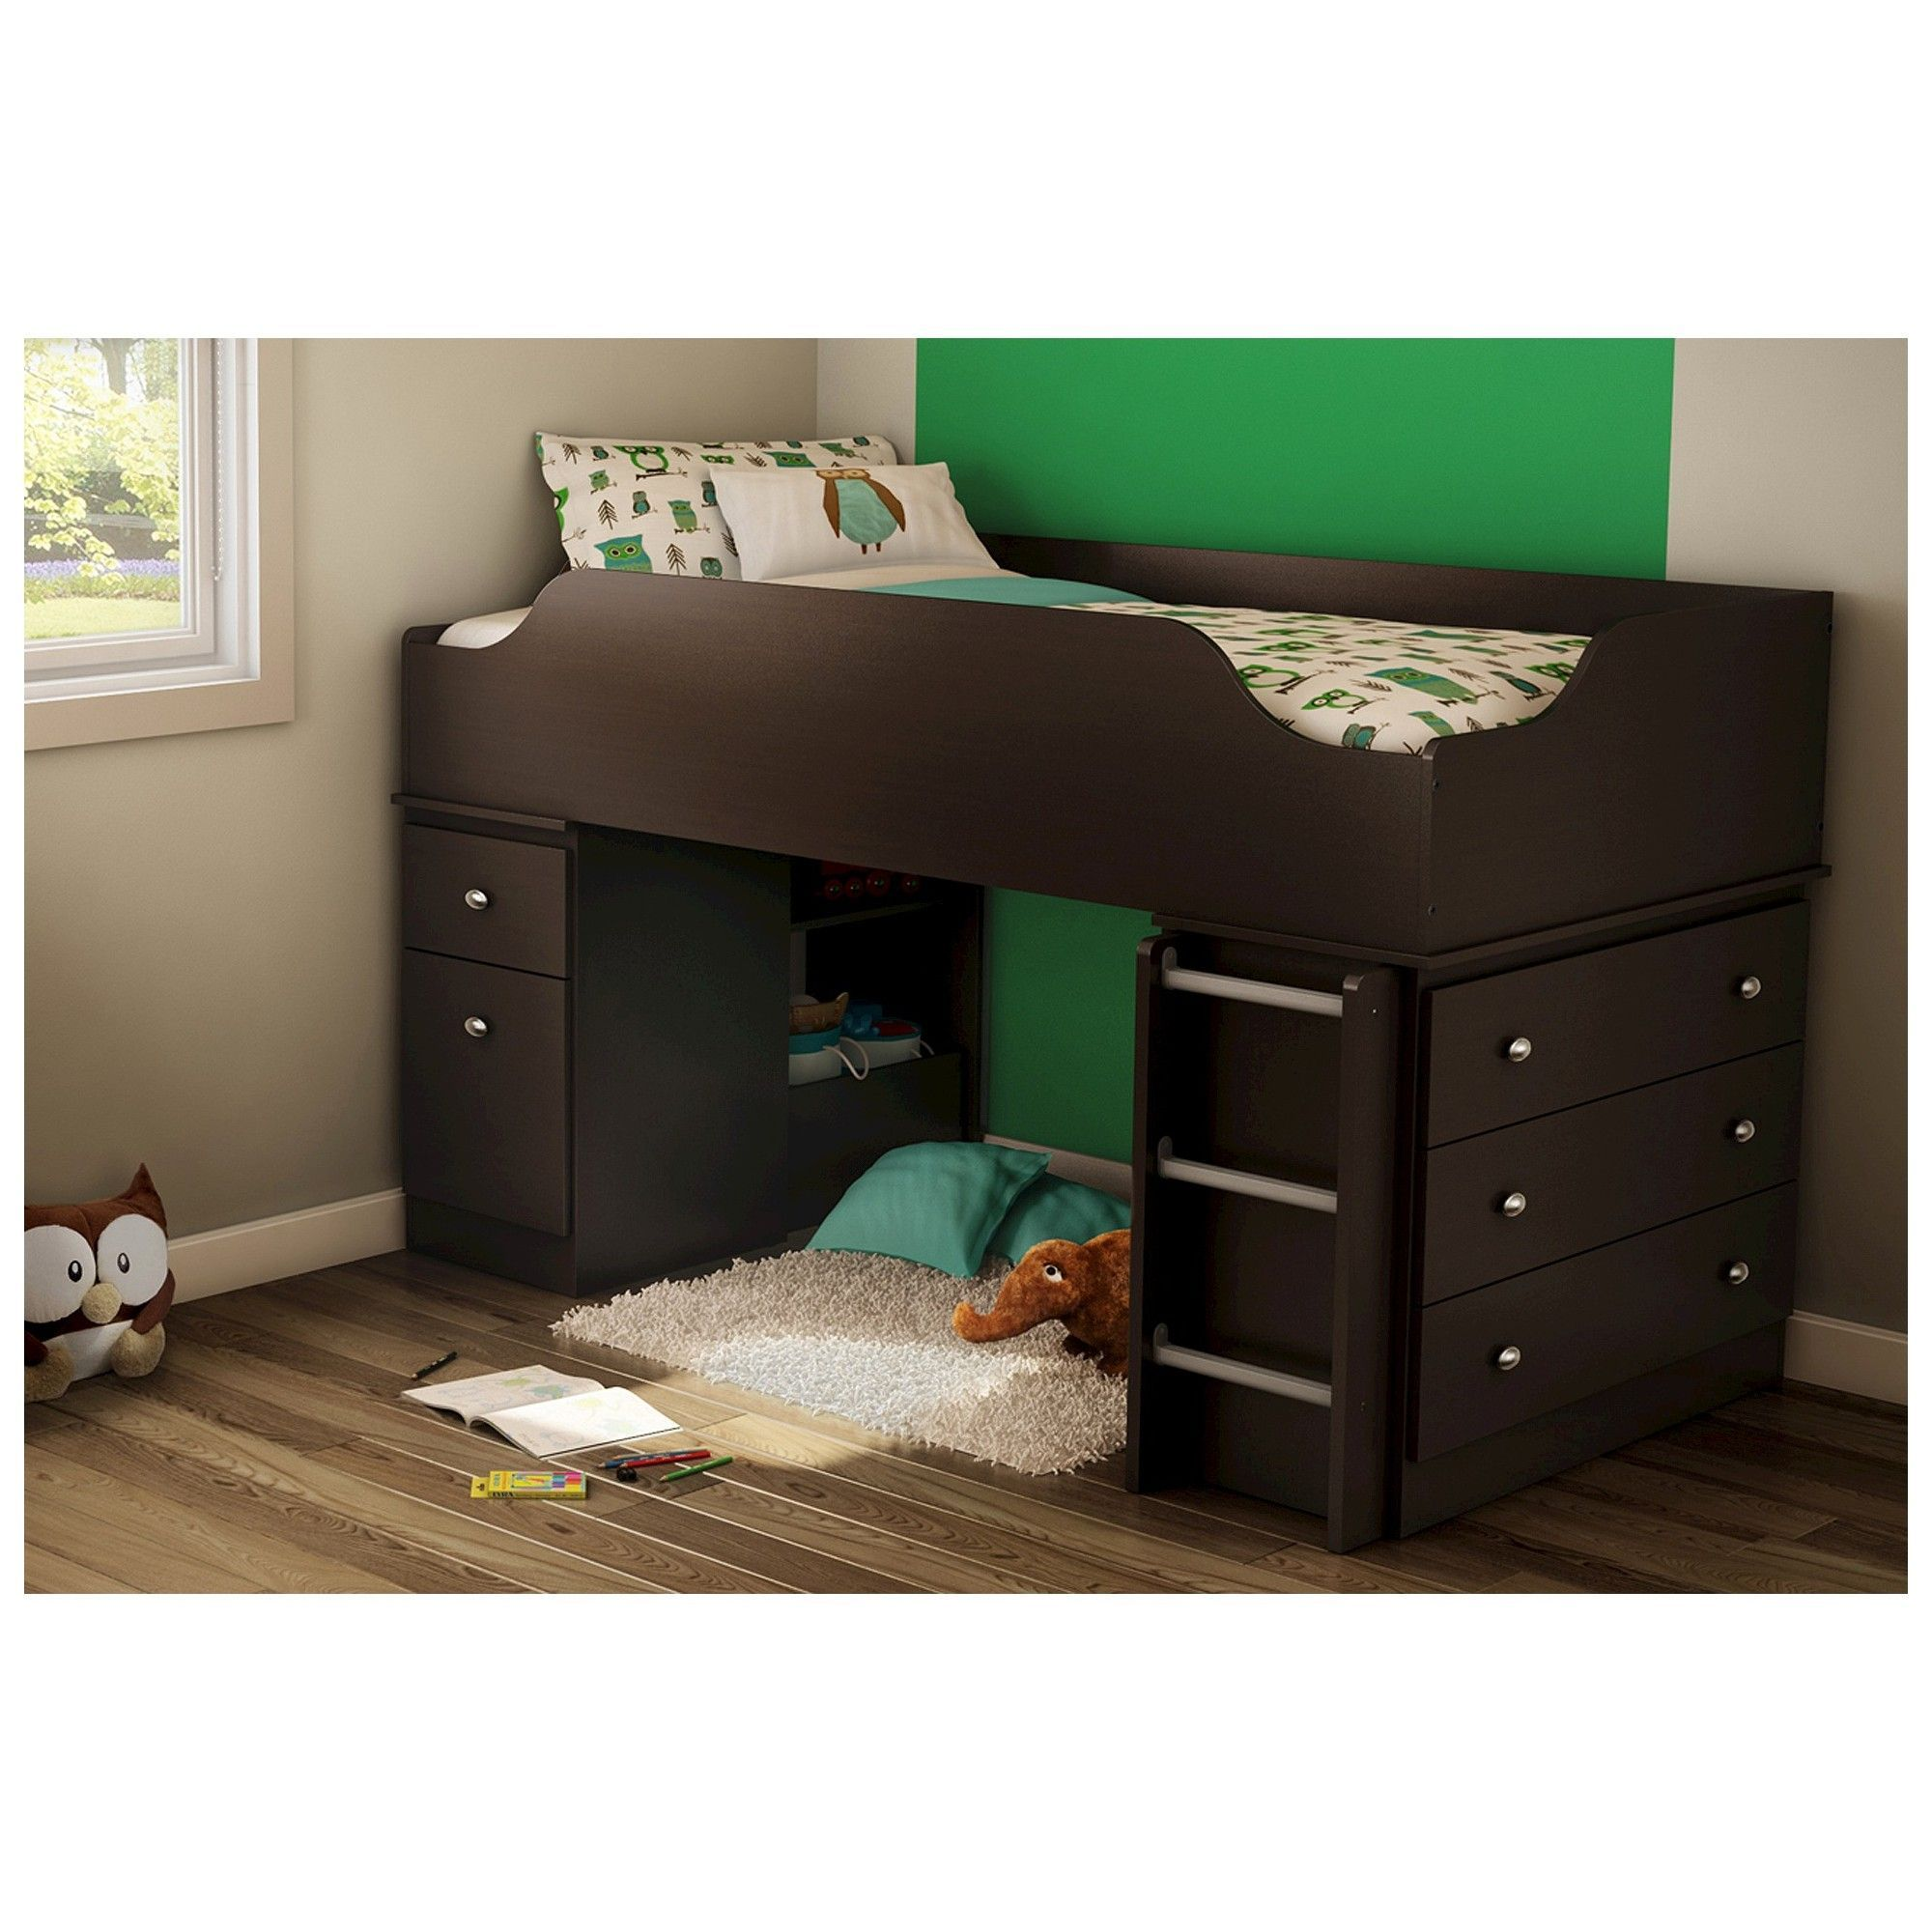 Twin loft bed ideas  South Shore Tree House Loft Kids Bed  Chocolate Brown Twin